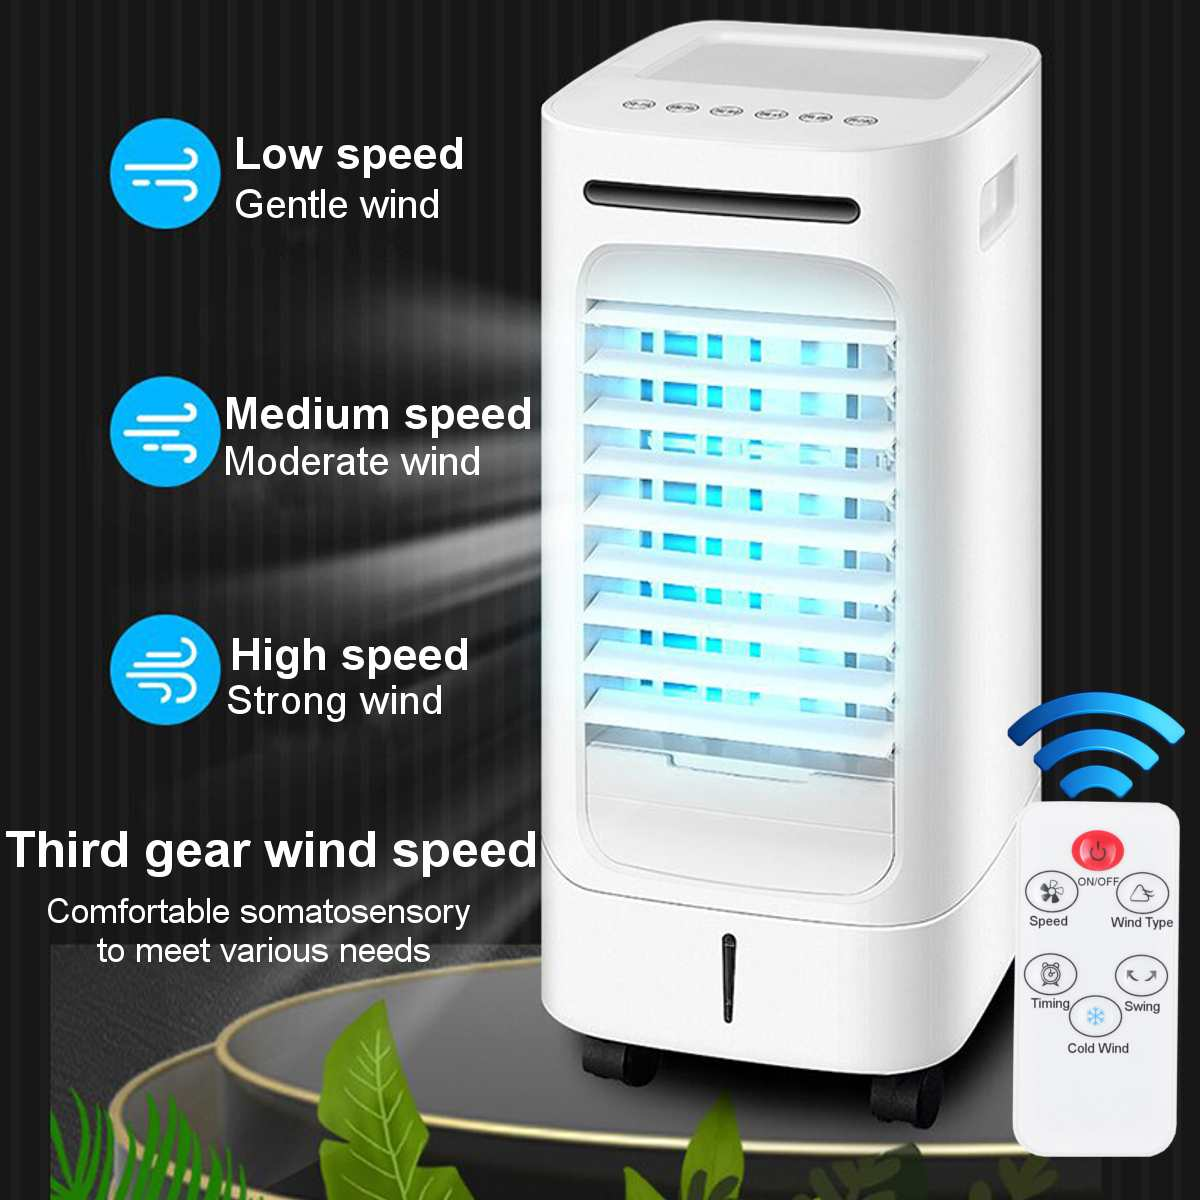 75W Home Mobile Air Conditioning Fan Portable 2 5L Tank Humidifier Cooler 3 Fan Modes Sleep Timer 220V Bedroom Living Room offic